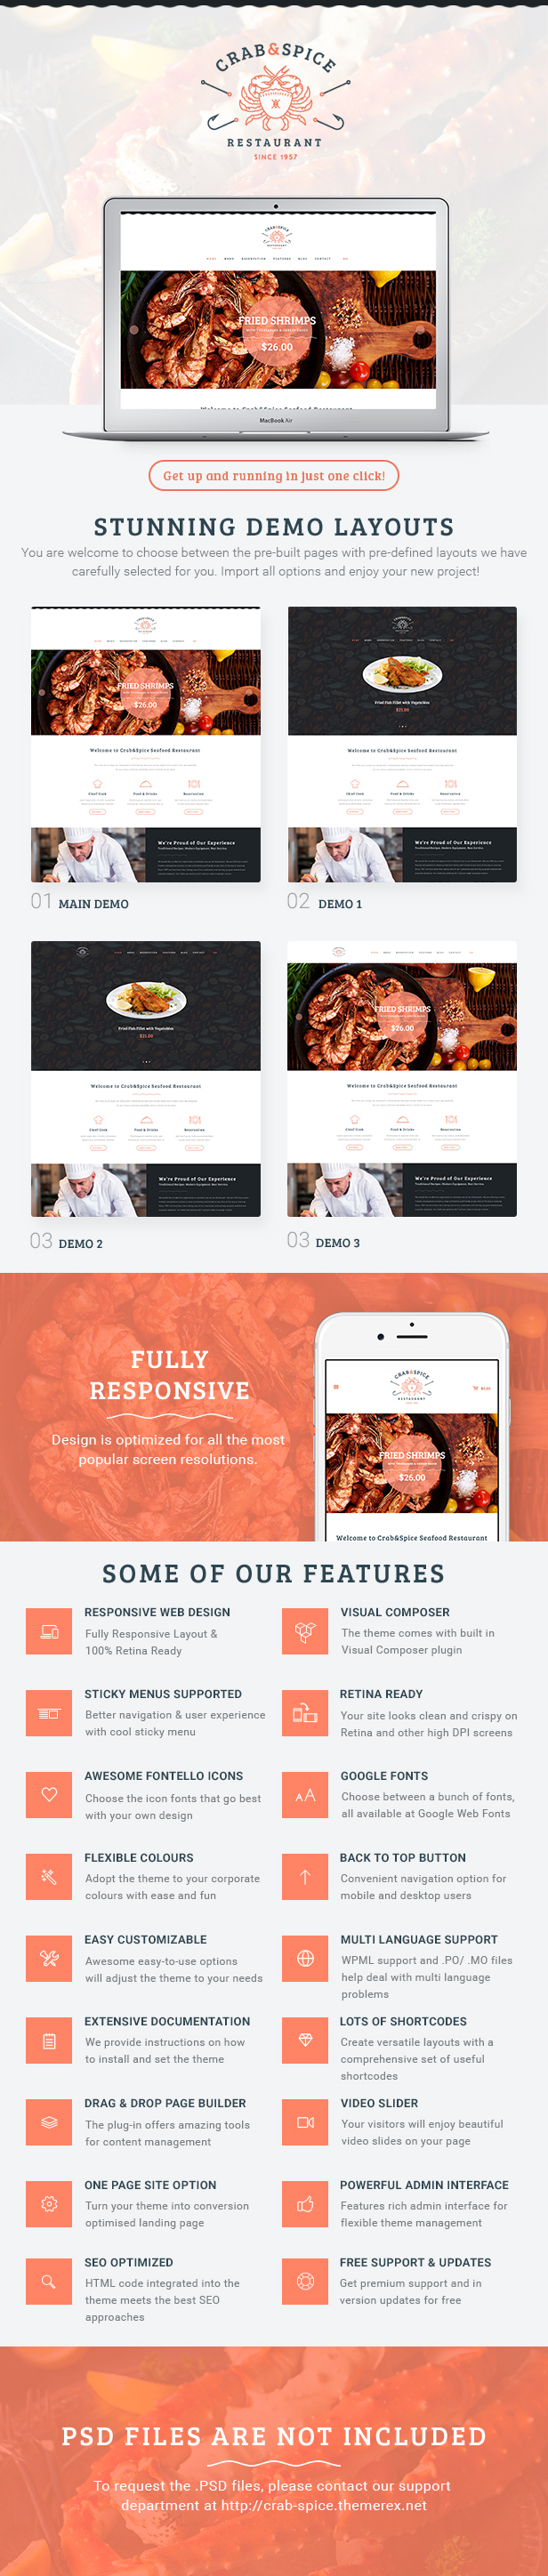 Crab & Spice | Restaurant and Cafe WordPress Theme - 2